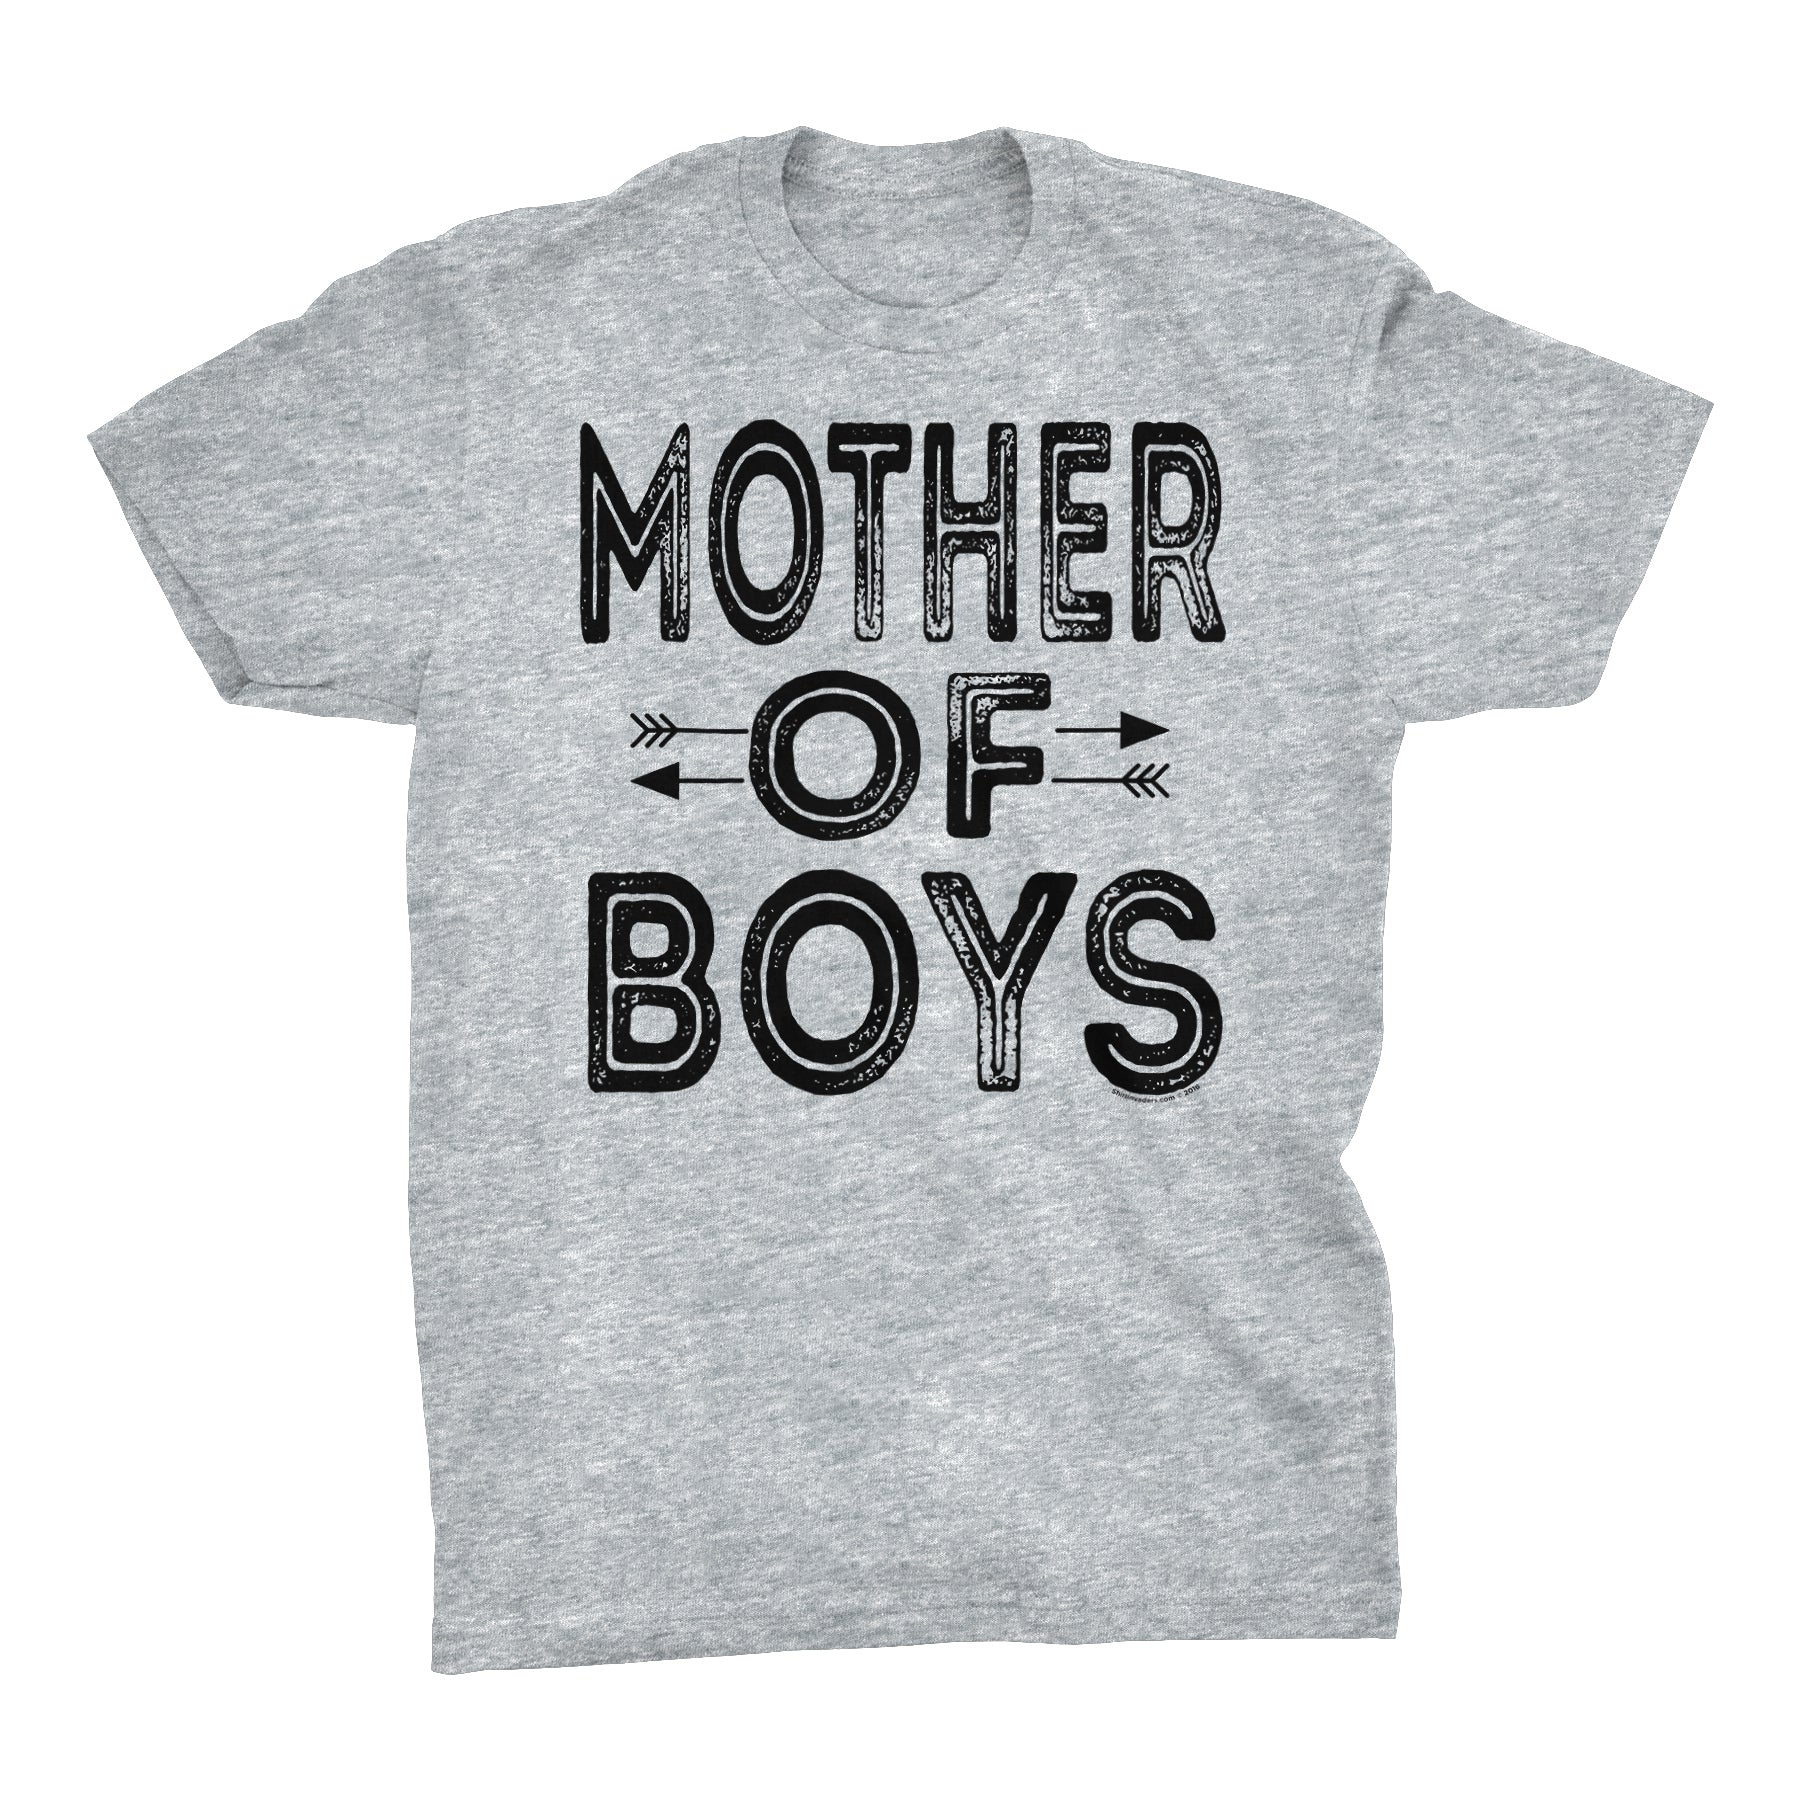 mother and son t shirts